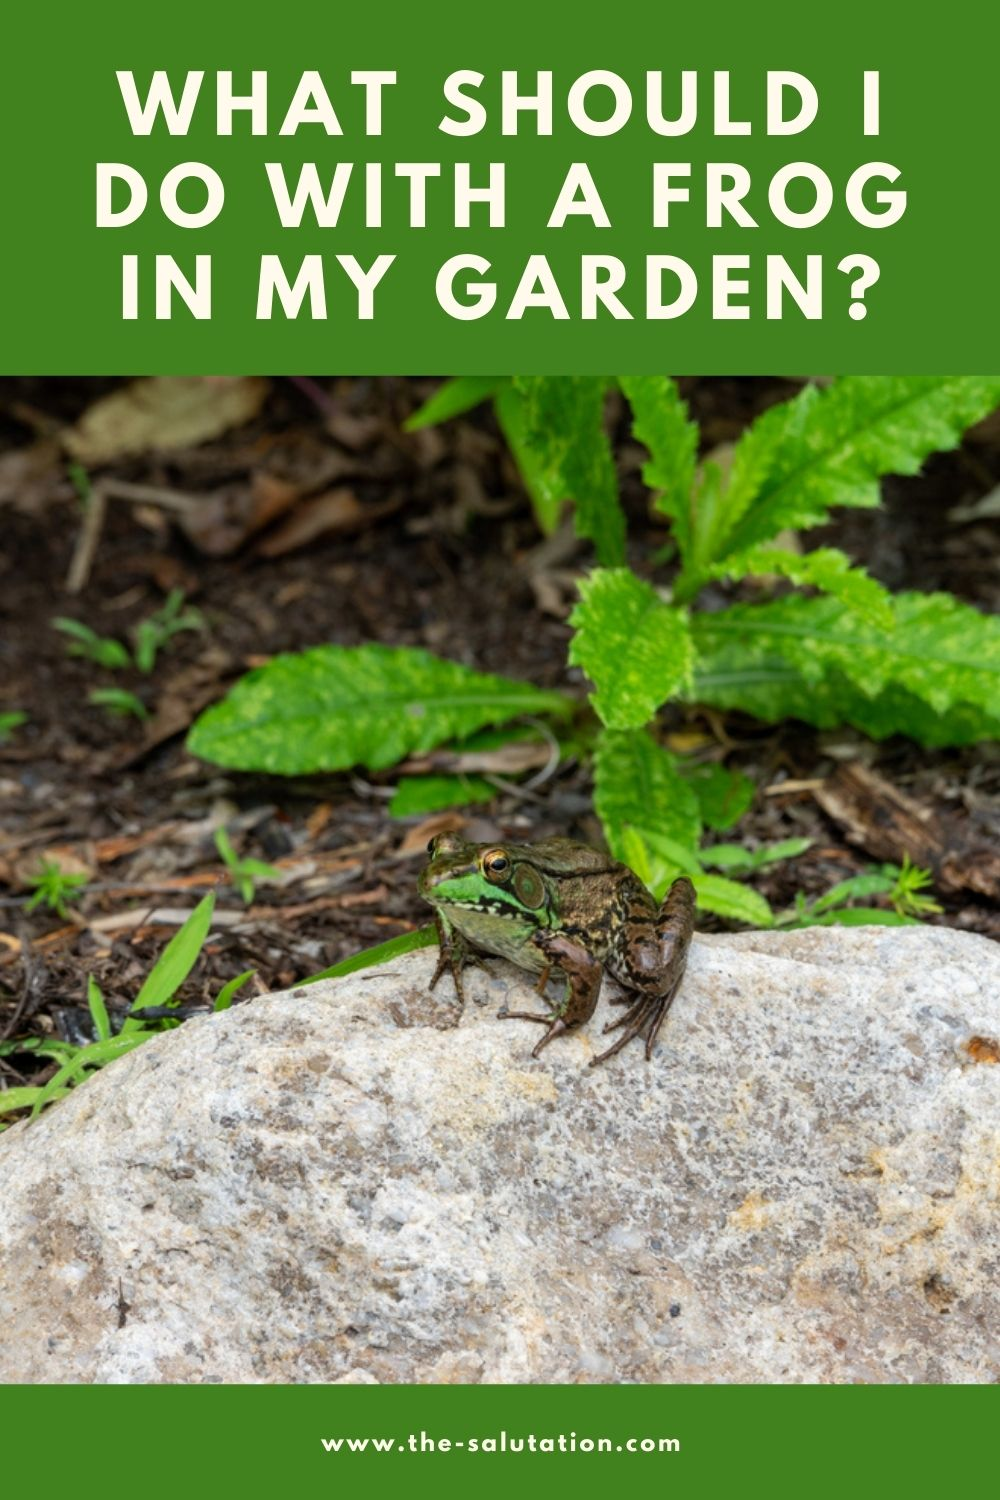 What Should I Do with a Frog in My Garden (13 Tips) 1